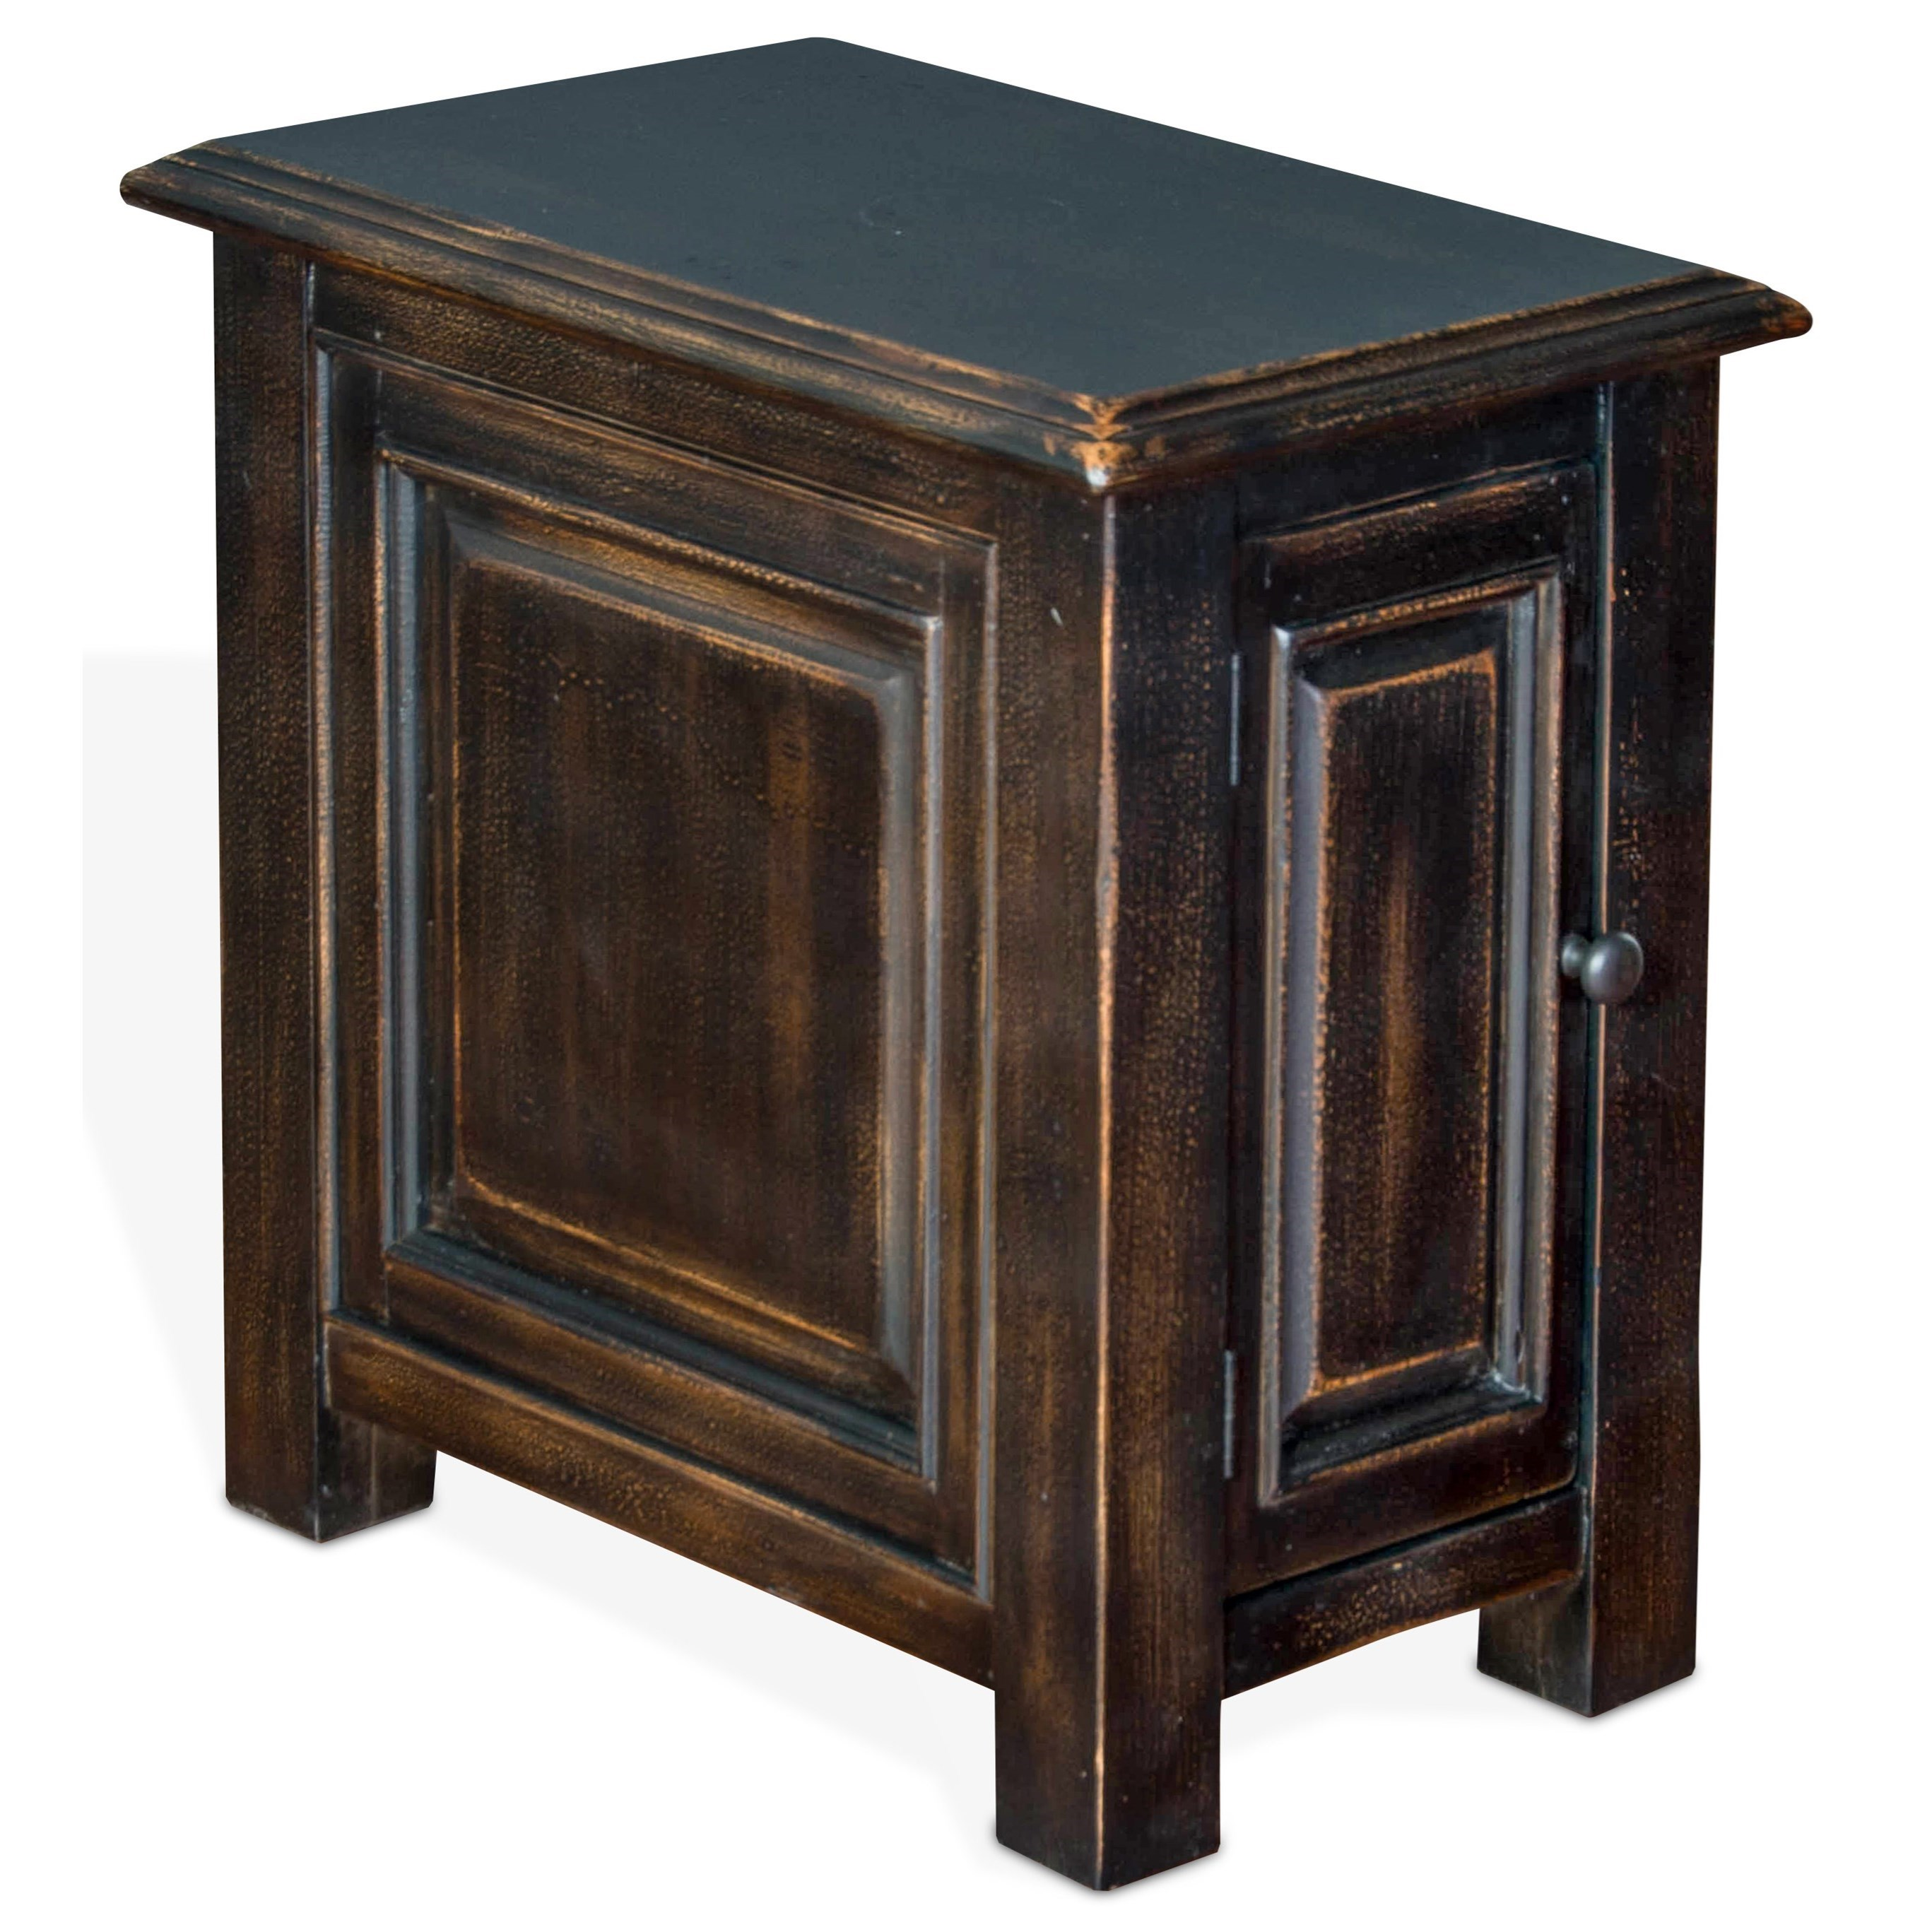 Sunny Designs Albany Chair Side Table - Item Number: 3261B-CS